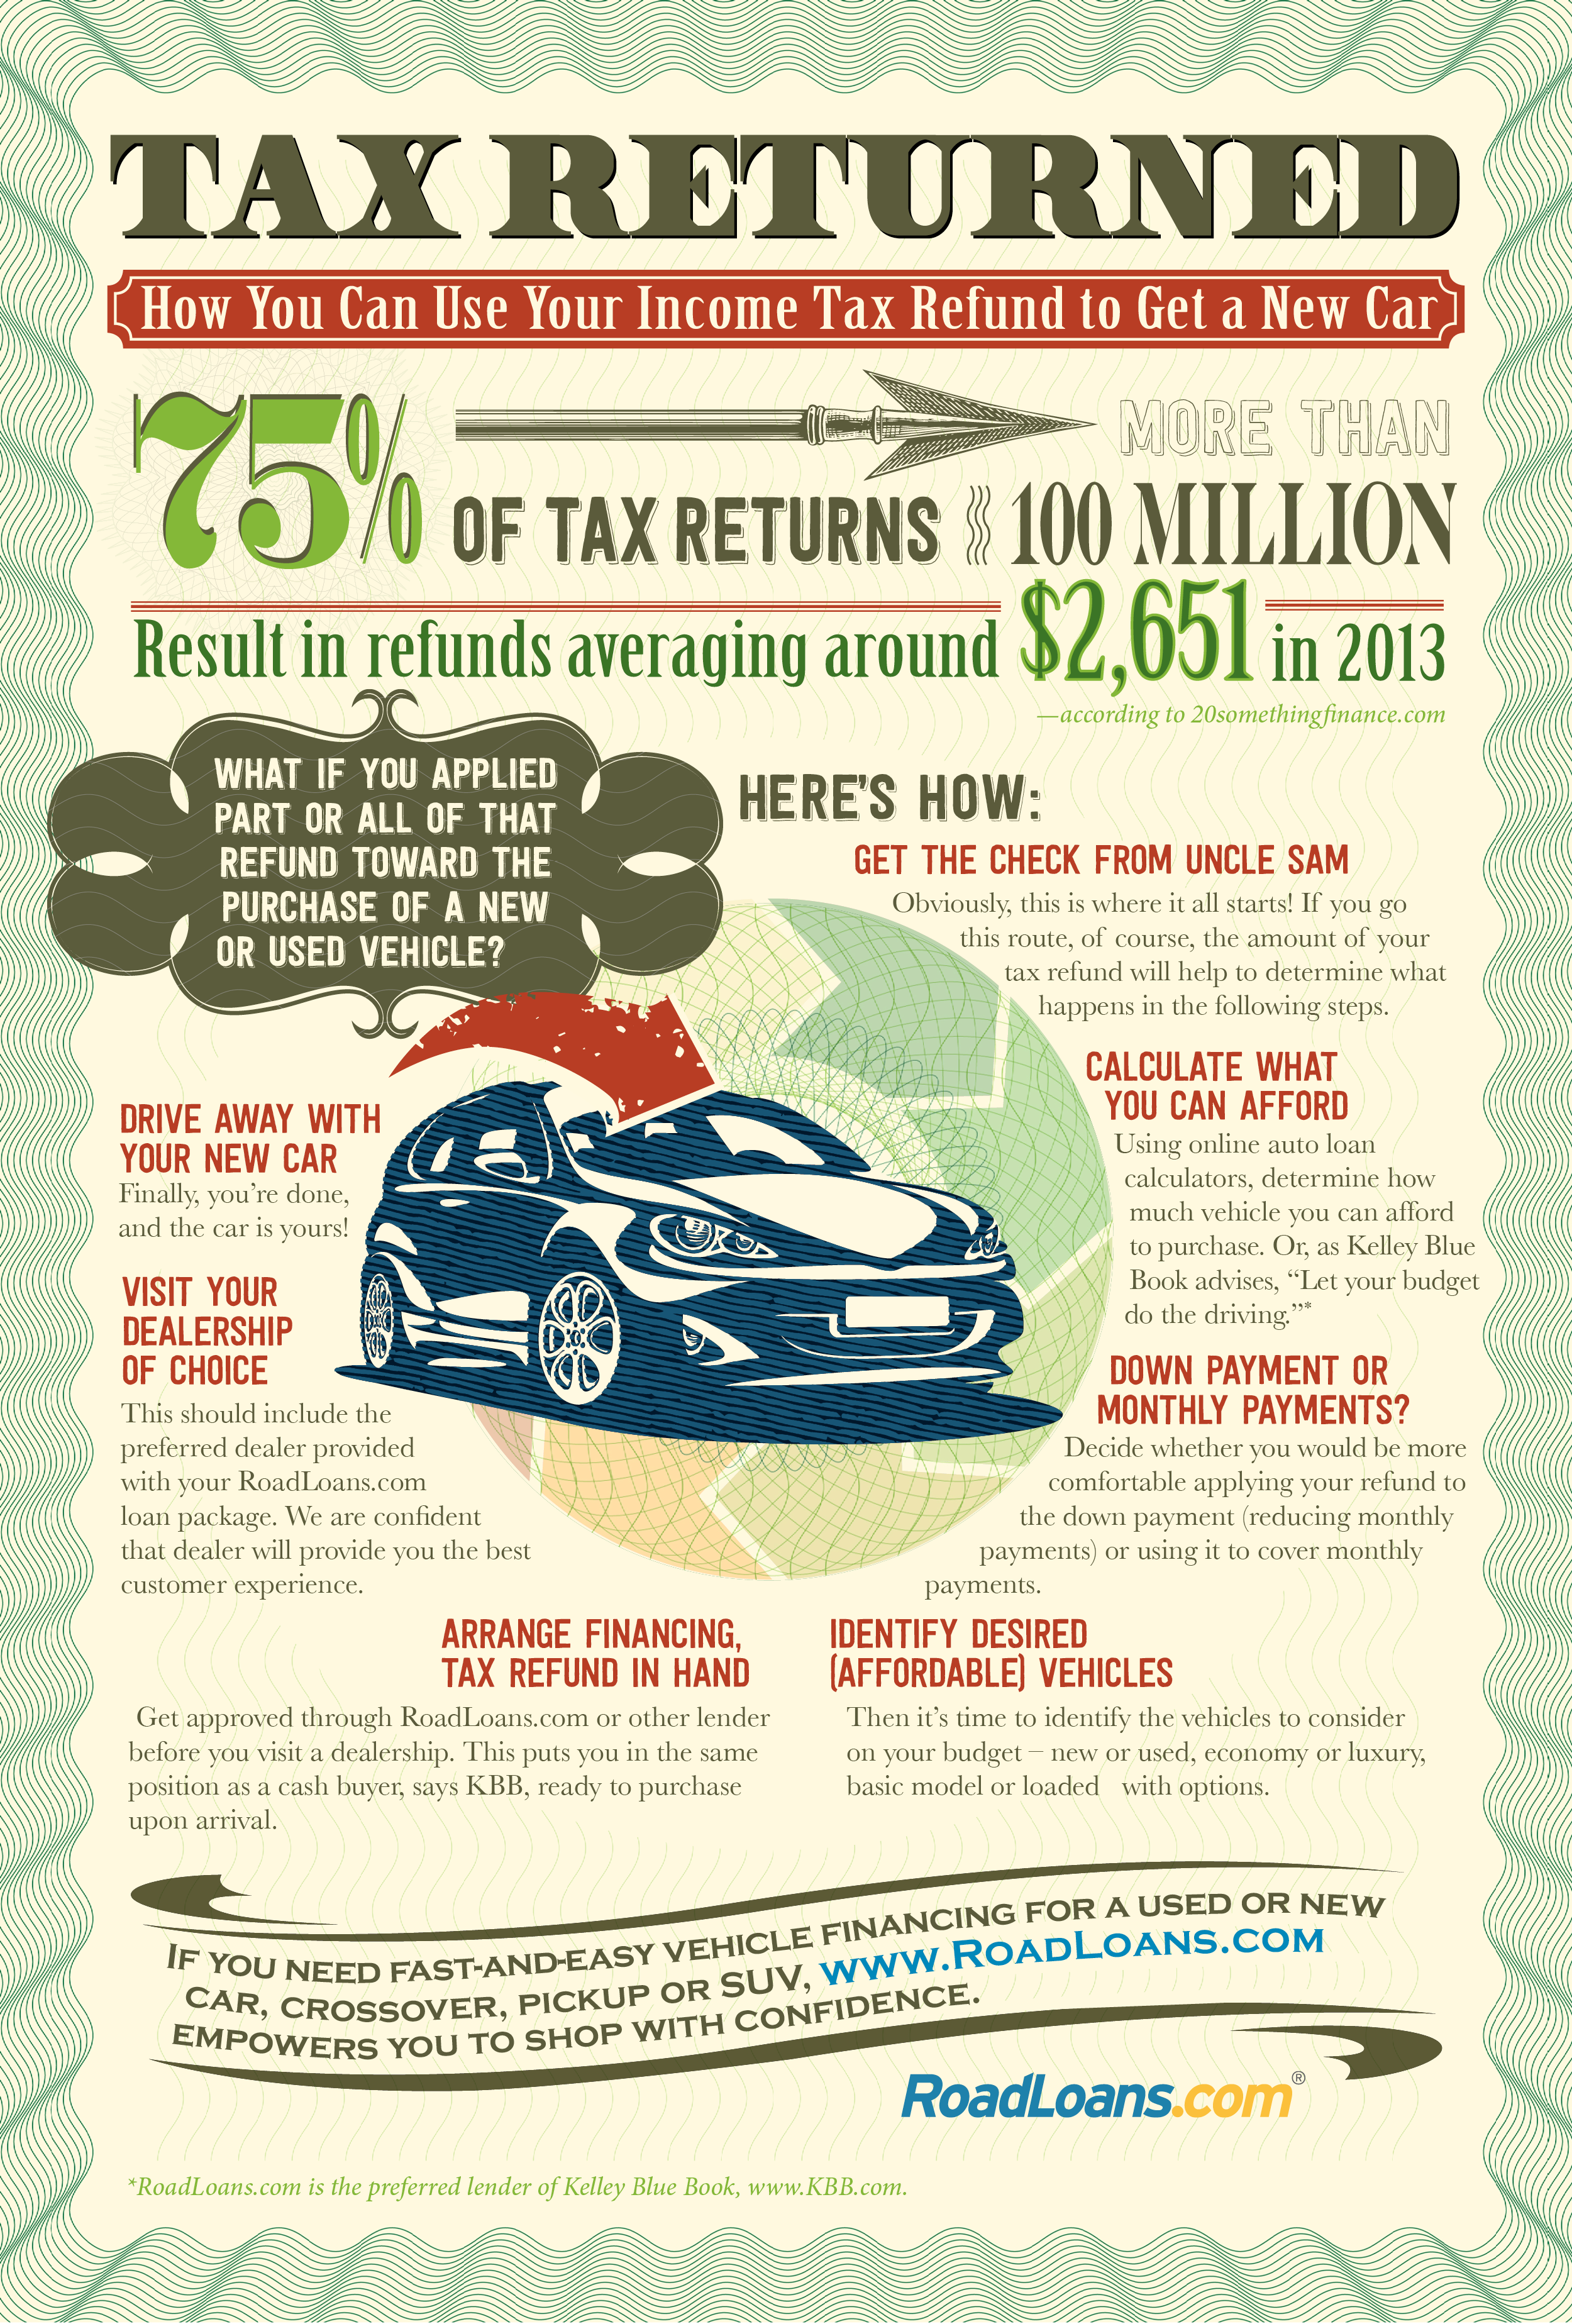 Rl Info 40108 3 Tax Refund Infographic Simplified1 1 Png